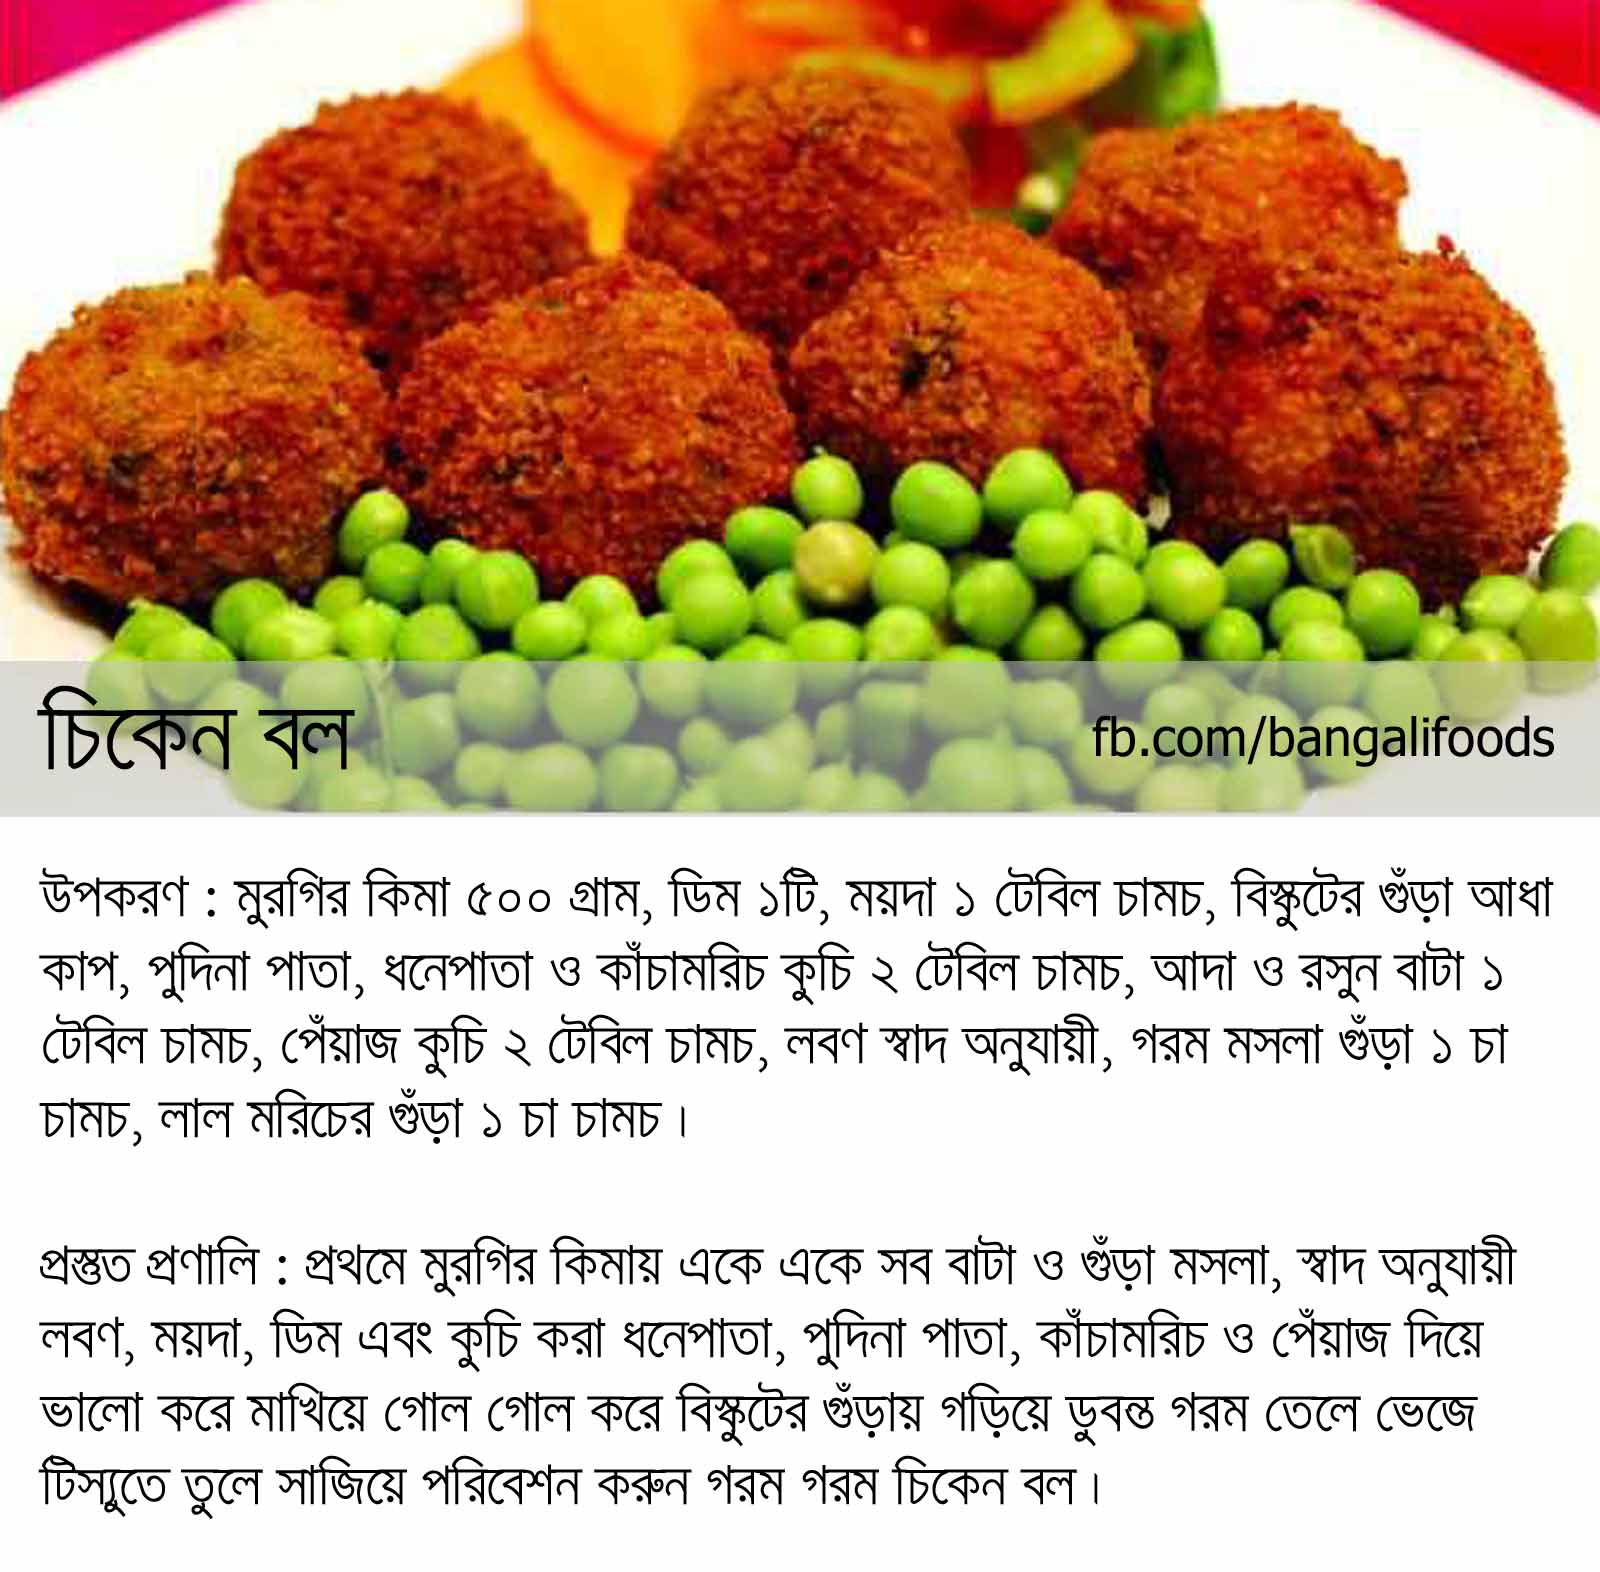 Chicken recipes in bengali language recipe chicken recipes in bengali language 4 forumfinder